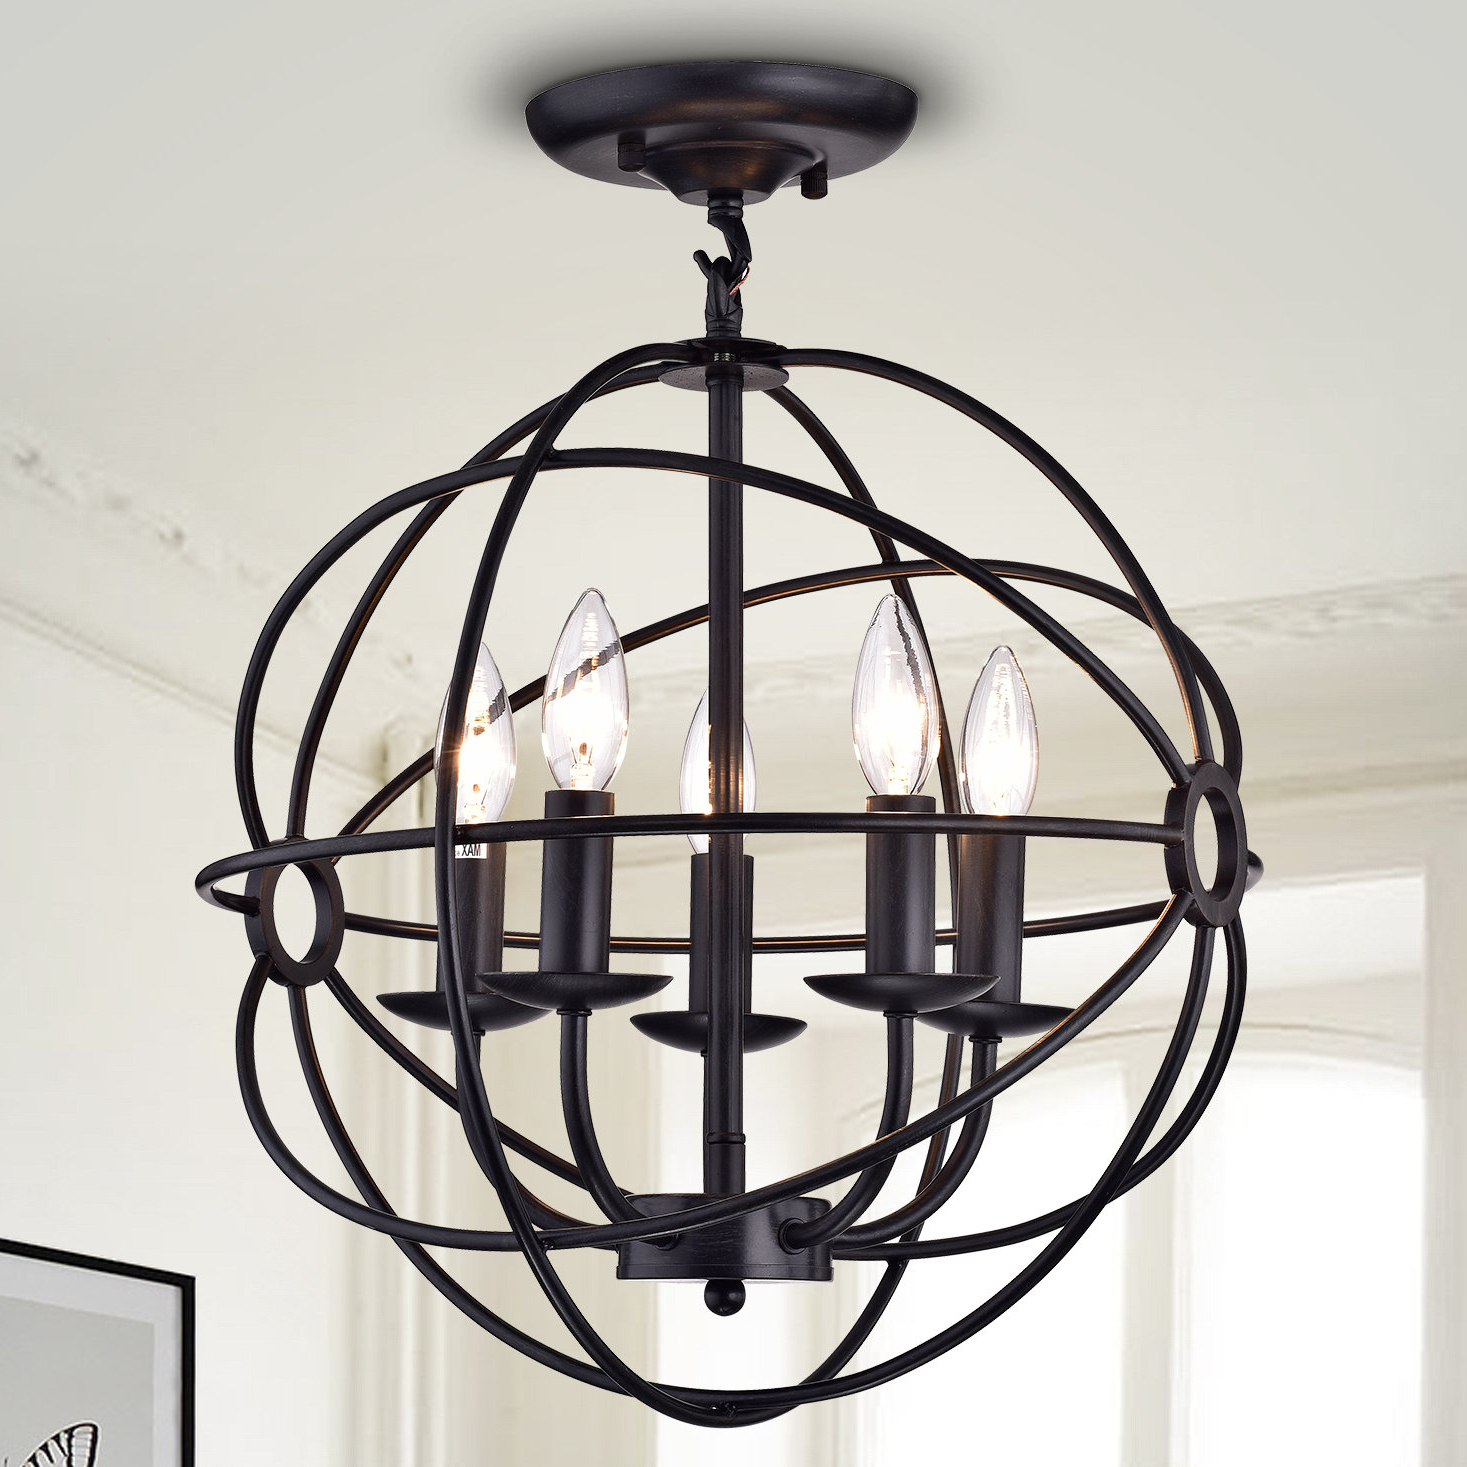 Waldron 5 Light Globe Chandeliers For Most Recent Hankinson 5 Light Globe (View 10 of 20)